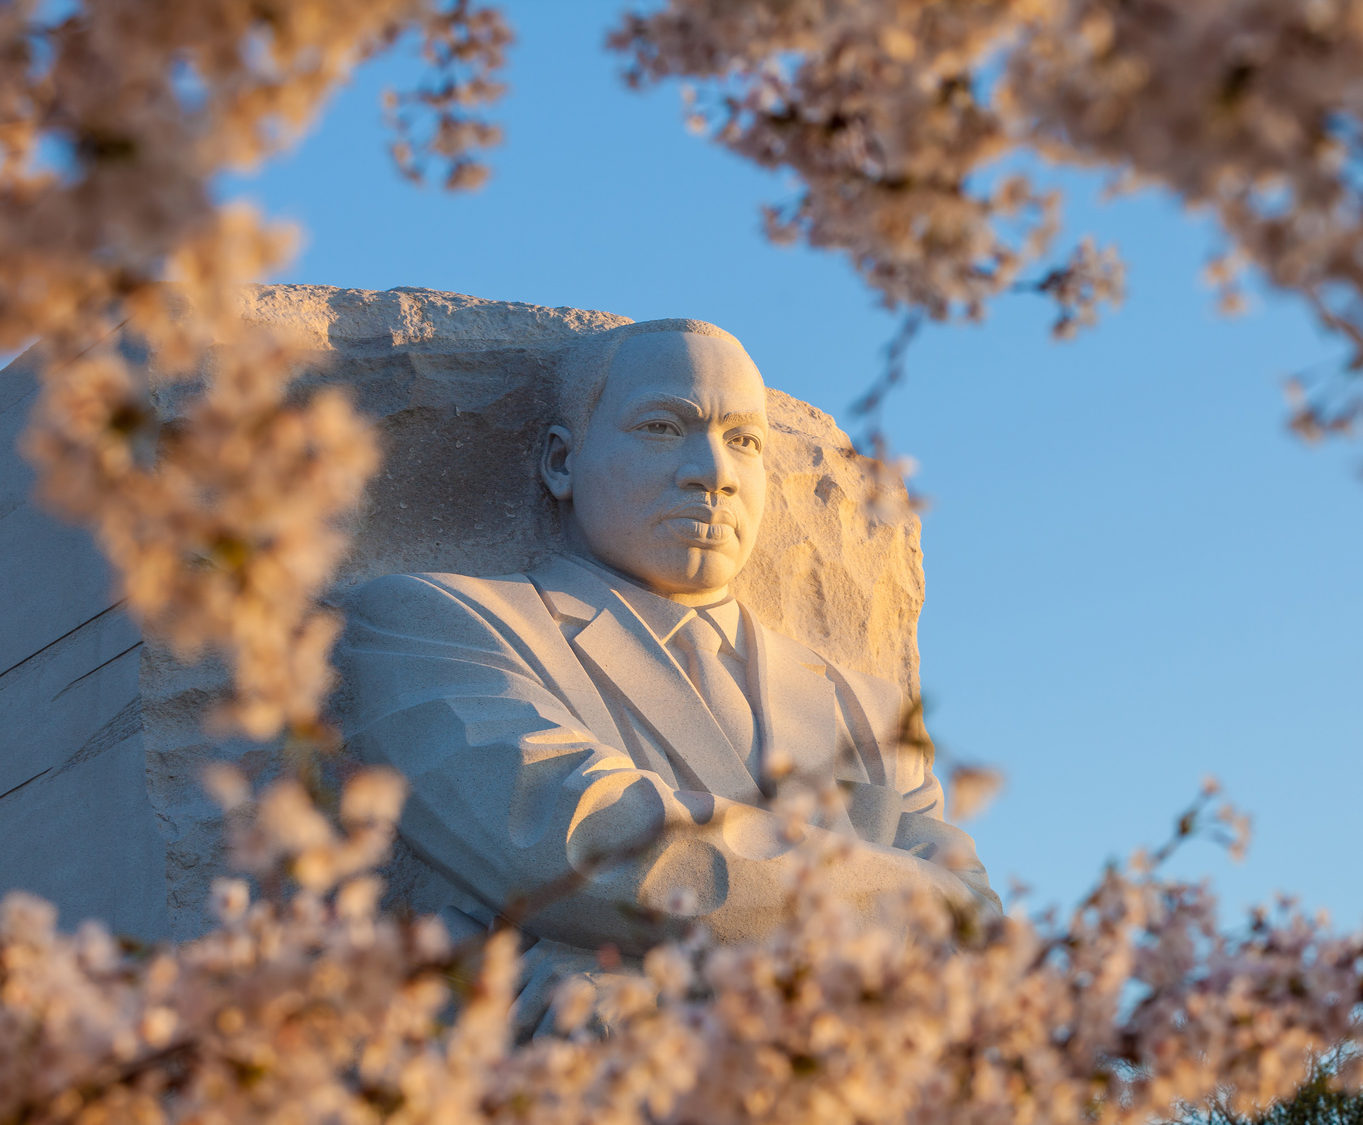 The Martin Luther King monutment in DC.